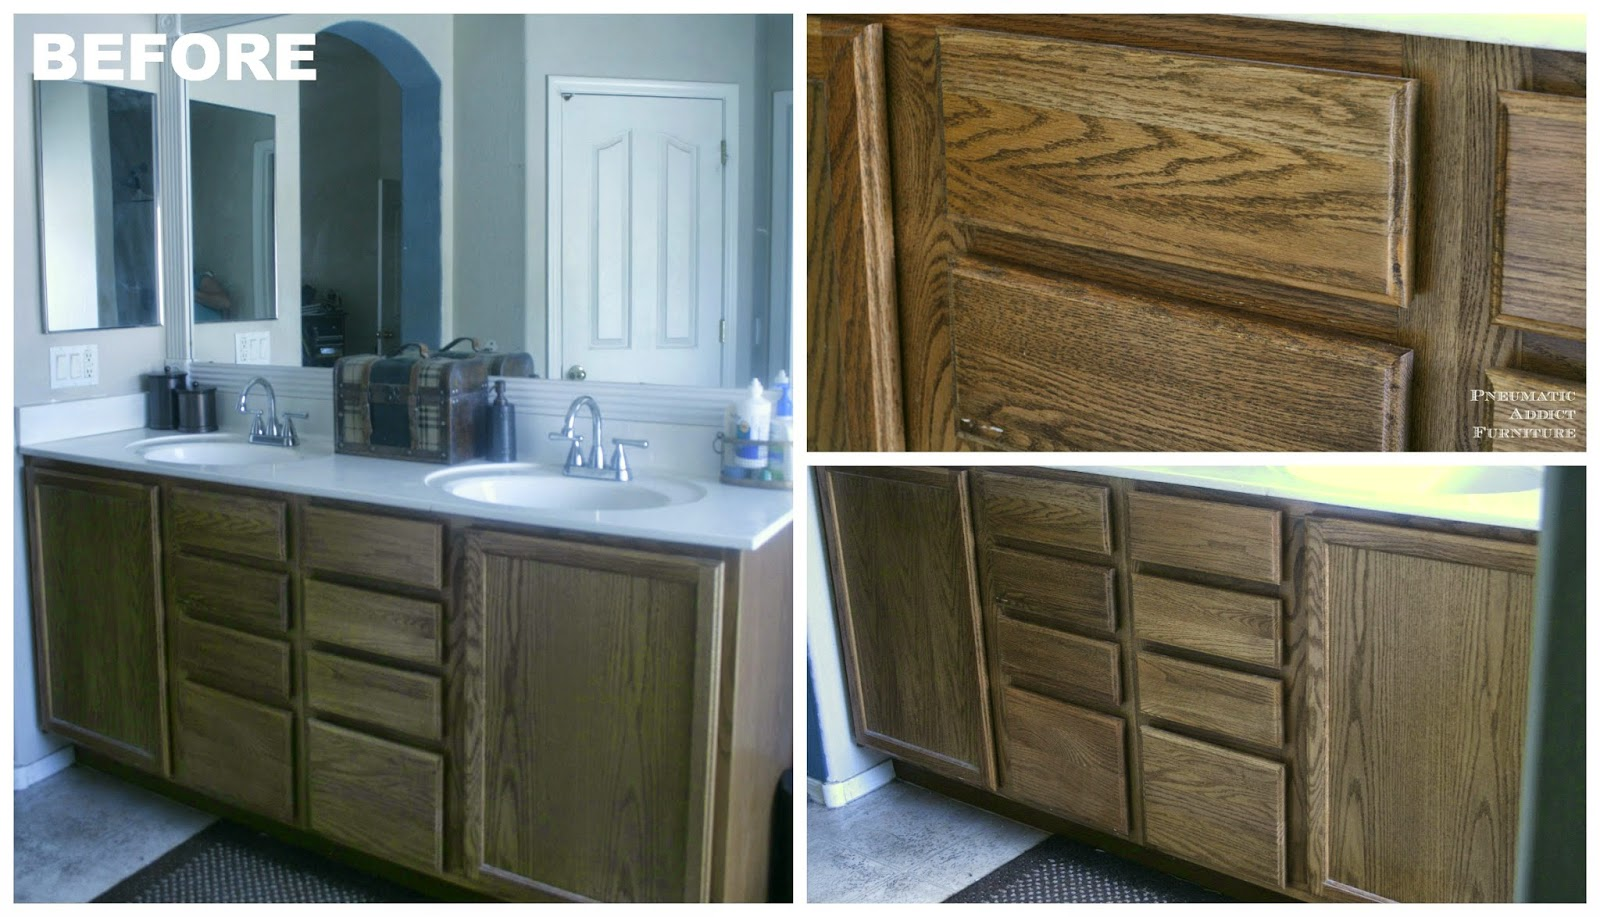 How To Strip And Refinish Kitchen Cabinets Refinishing Kitchen Cabinets Without Stripping Wow Blog